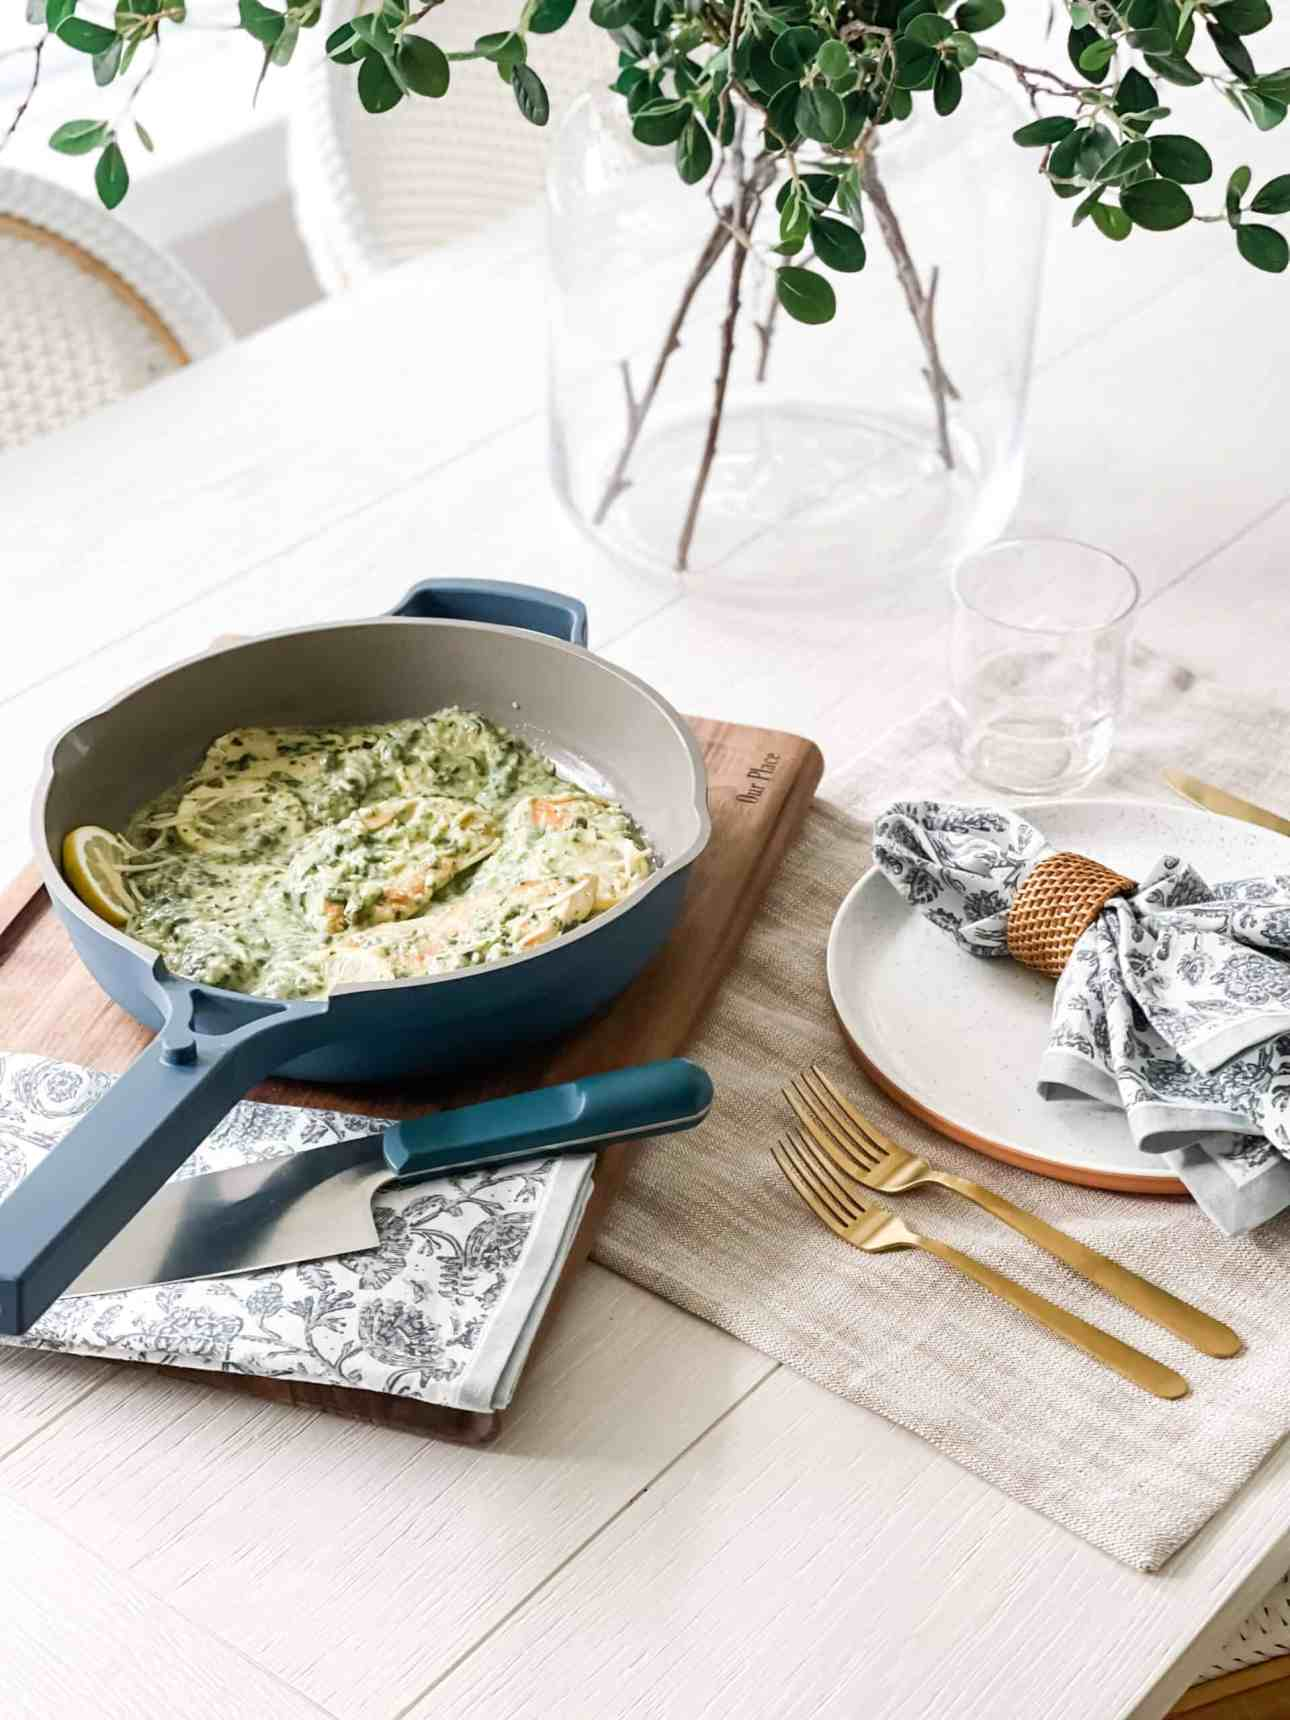 Cooking chicken piccata in the Always Pan from Our Place and setting a tablescape.